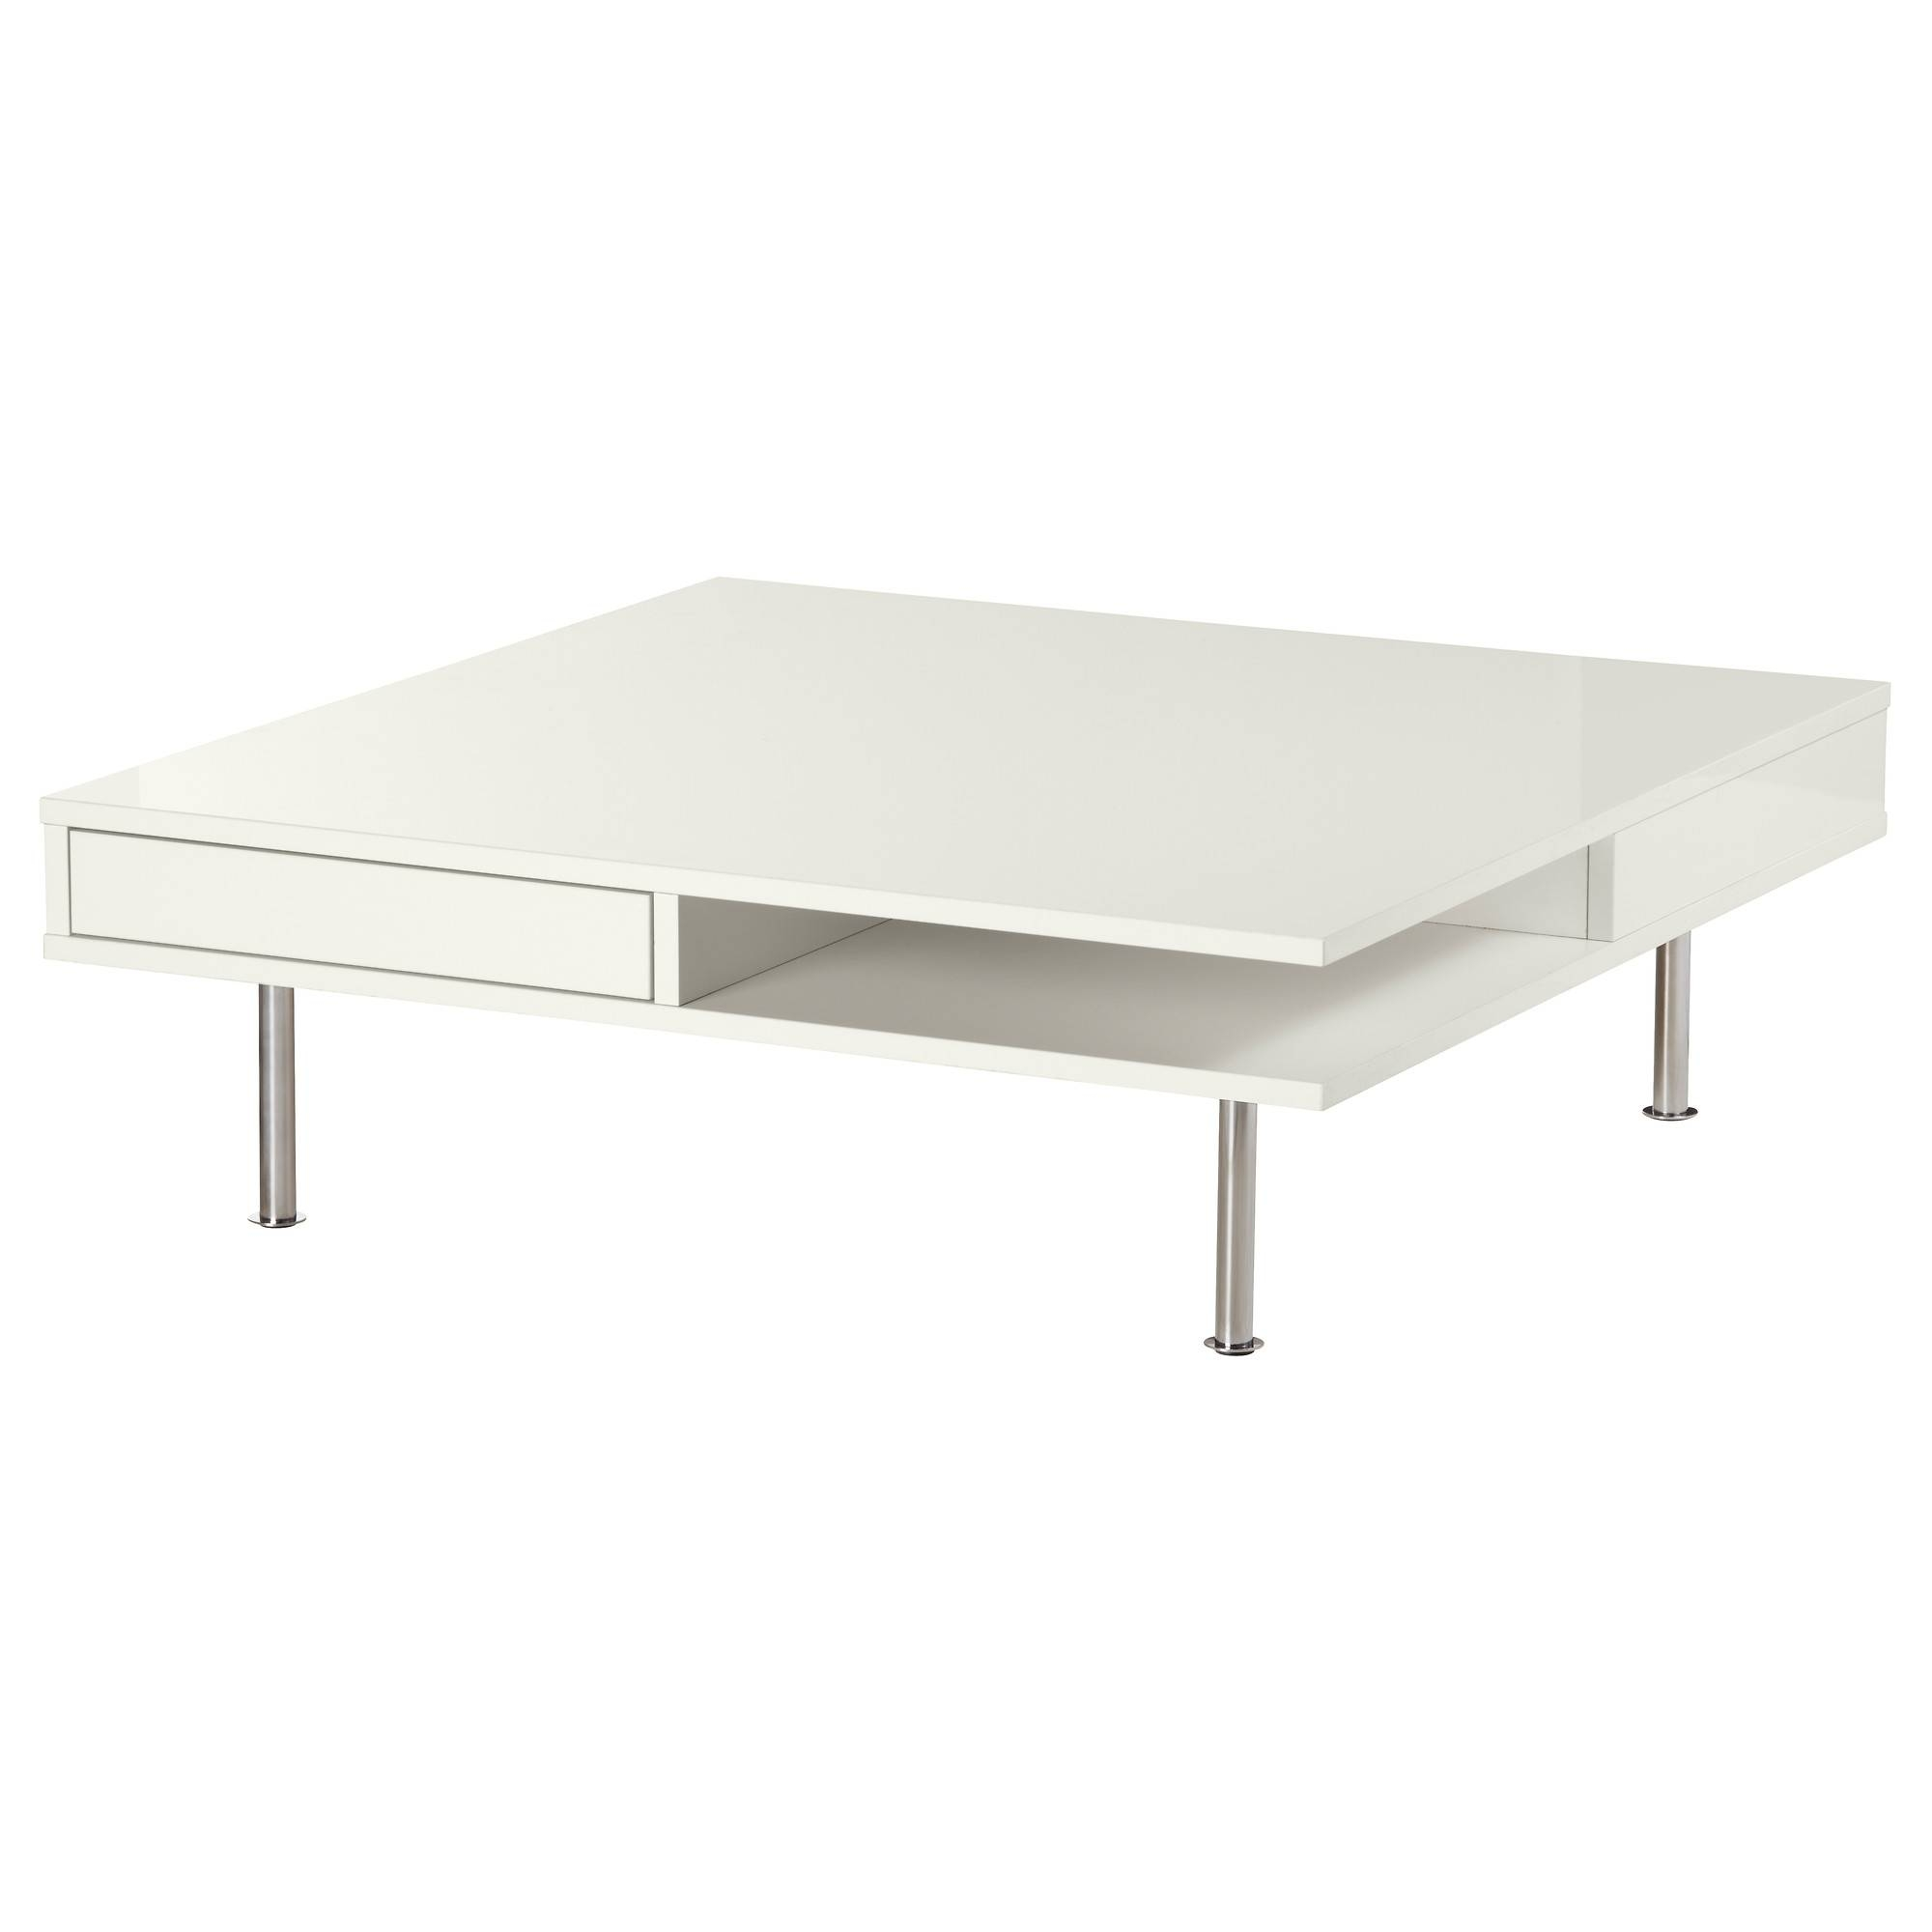 Coffee Tables & Console Tables - Ikea throughout White Cube Coffee Tables (Image 11 of 30)